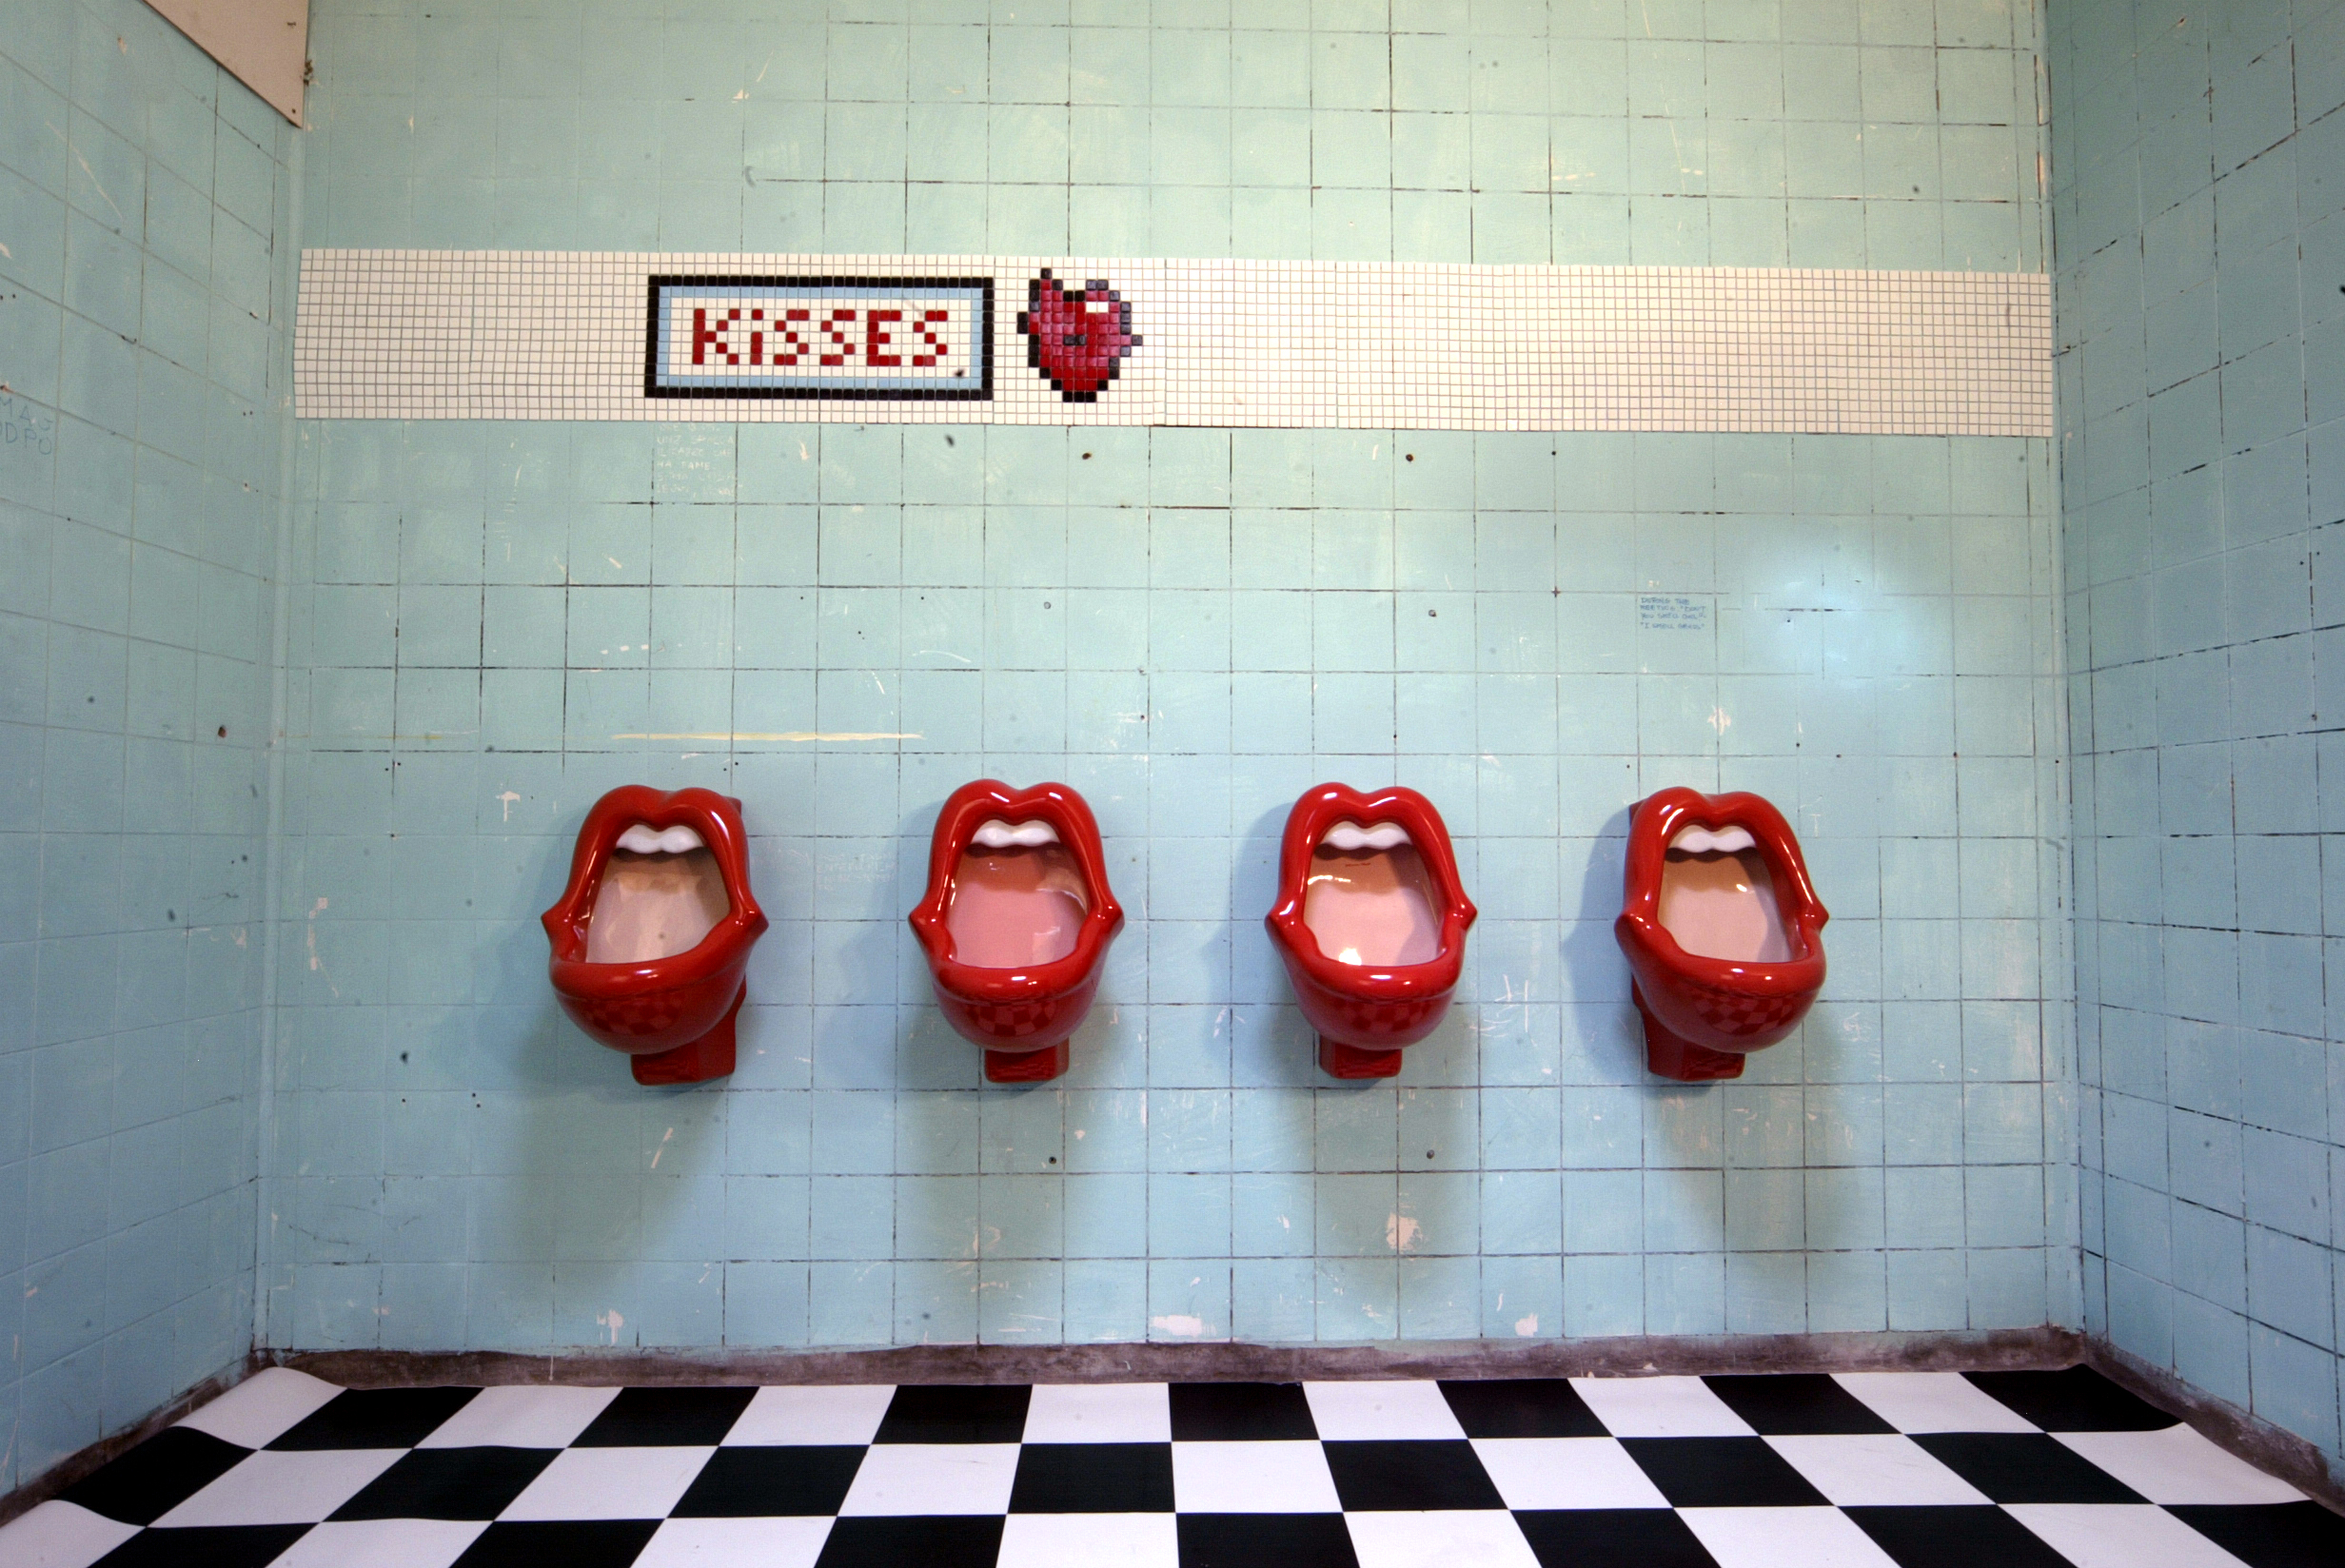 kisses urinal